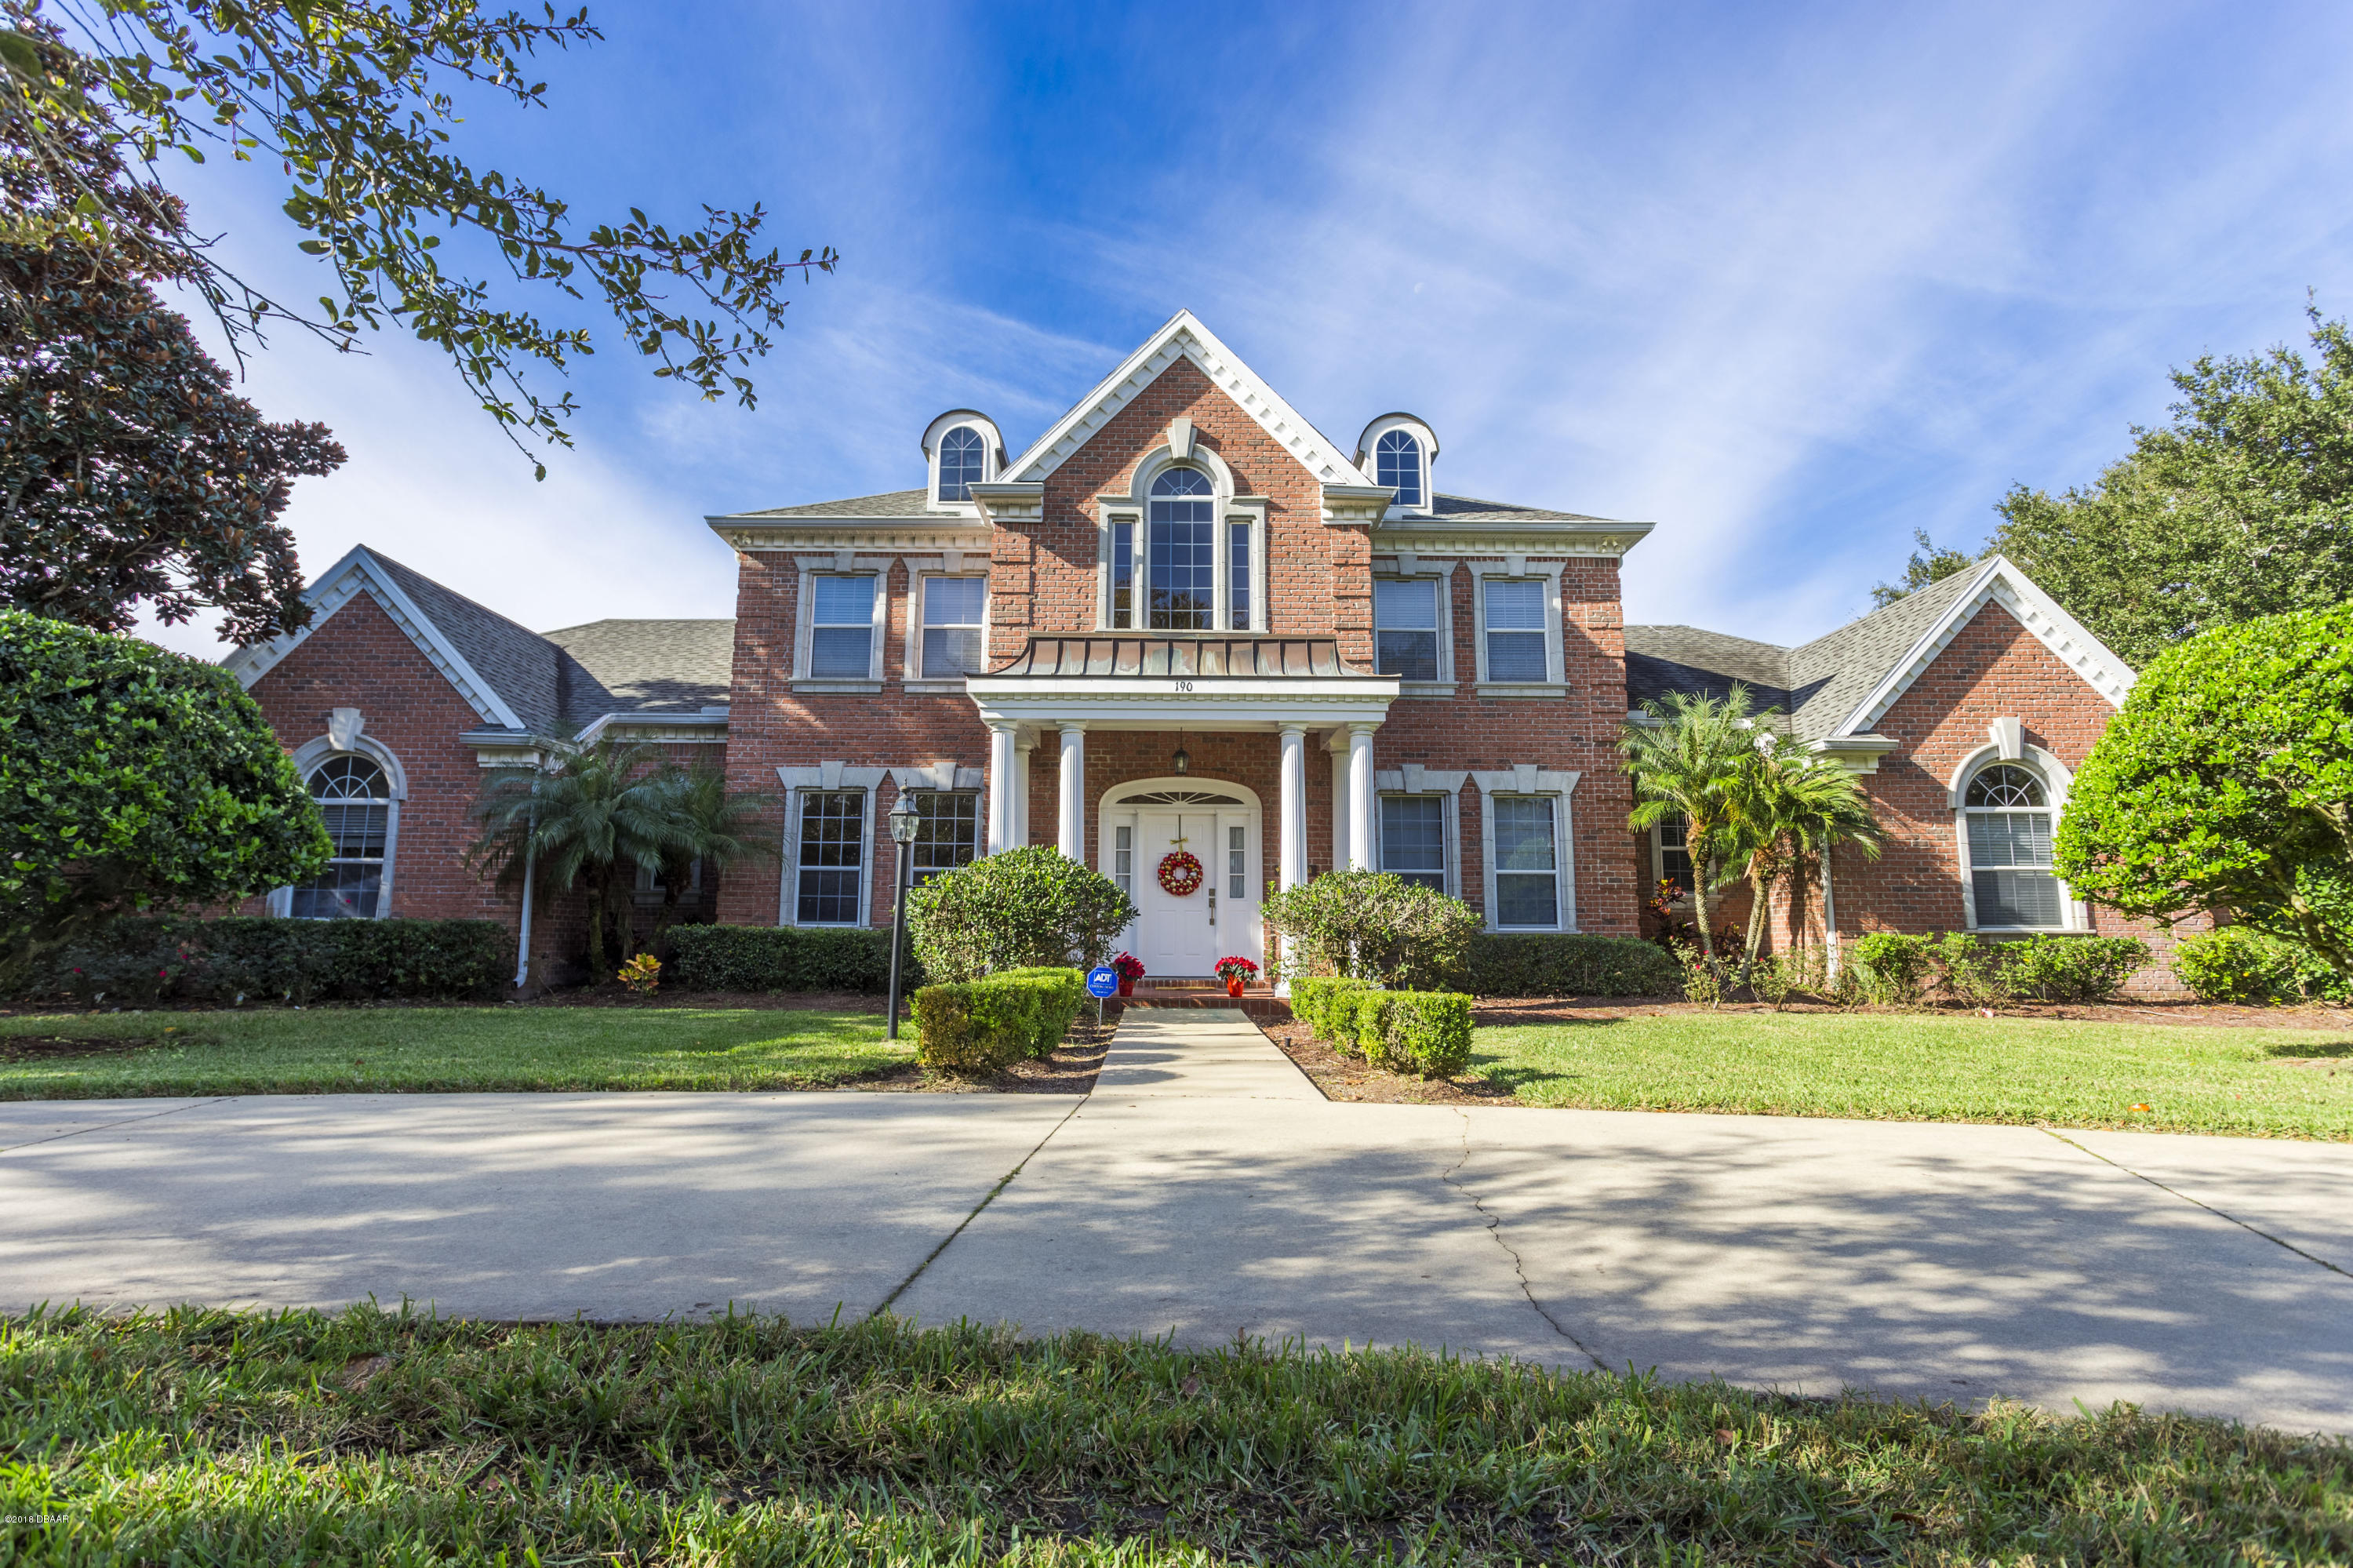 190 John Anderson Drive, one of homes for sale in Ormond Beach